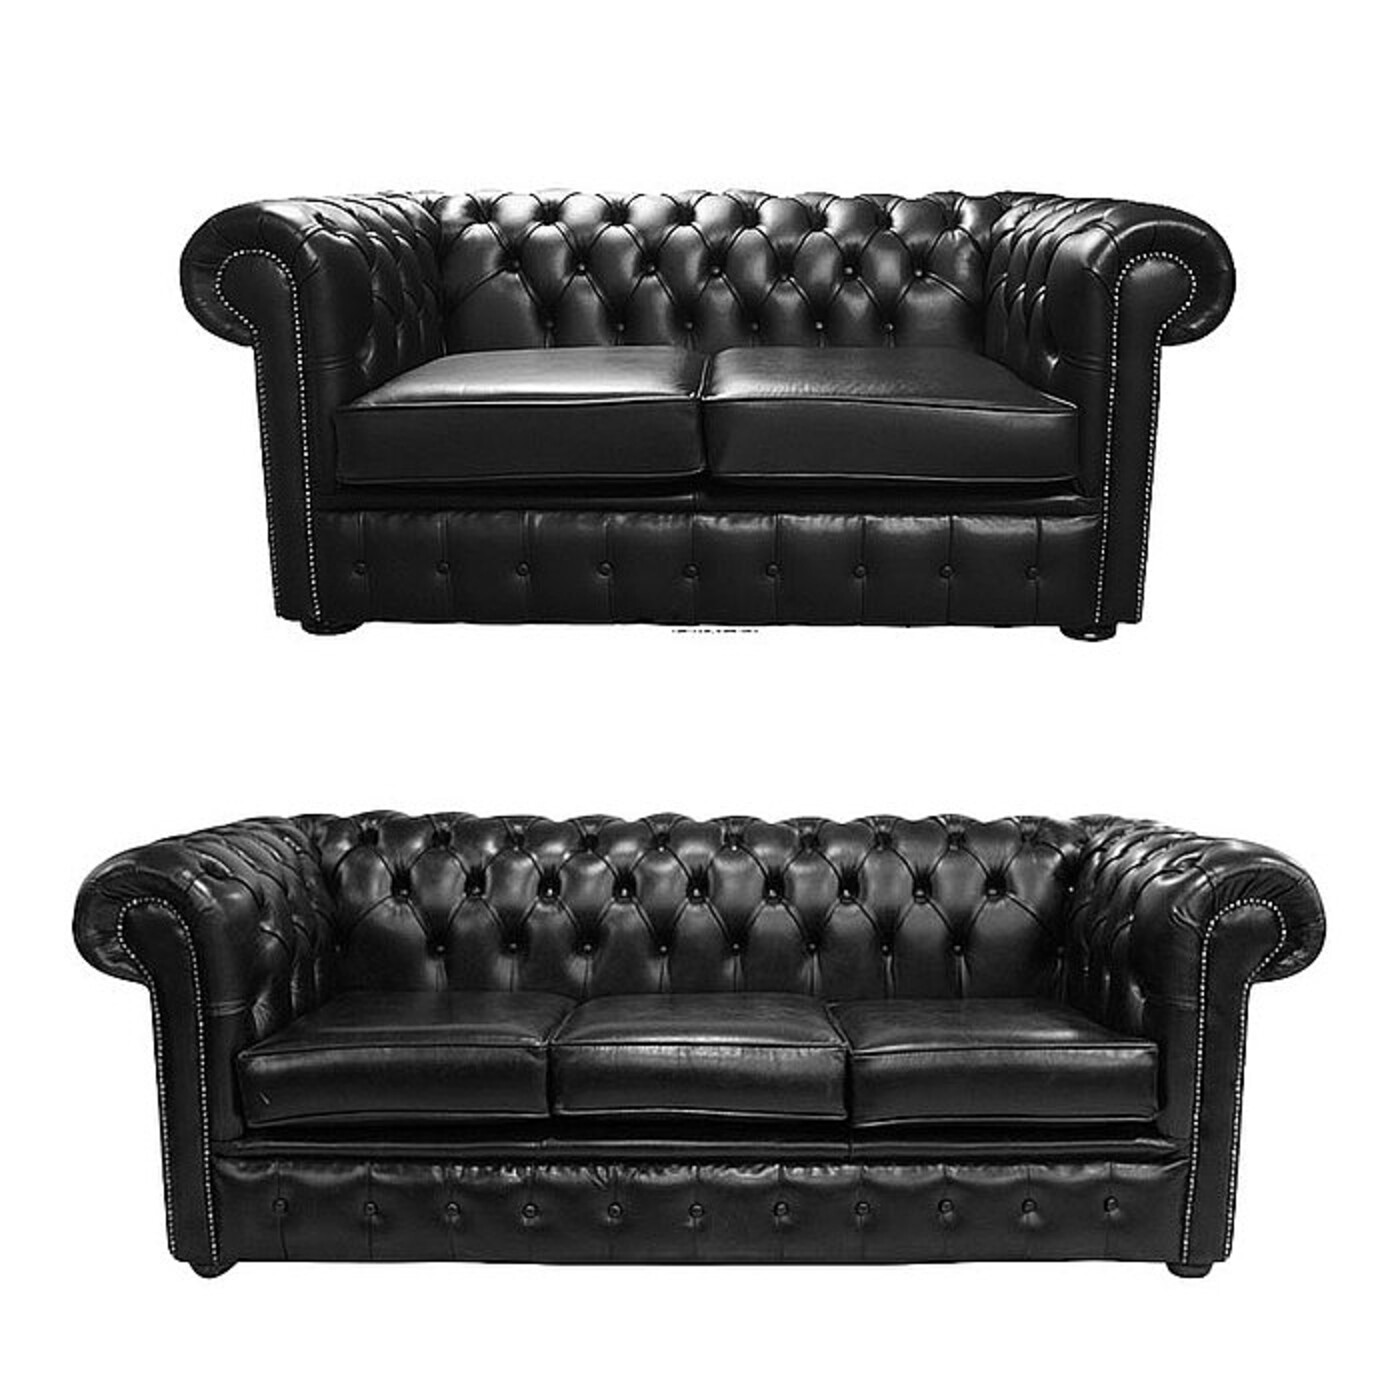 Chesterfield 2 Seater + 3 Seater Sofa Old English Black Leather Sofa Offer